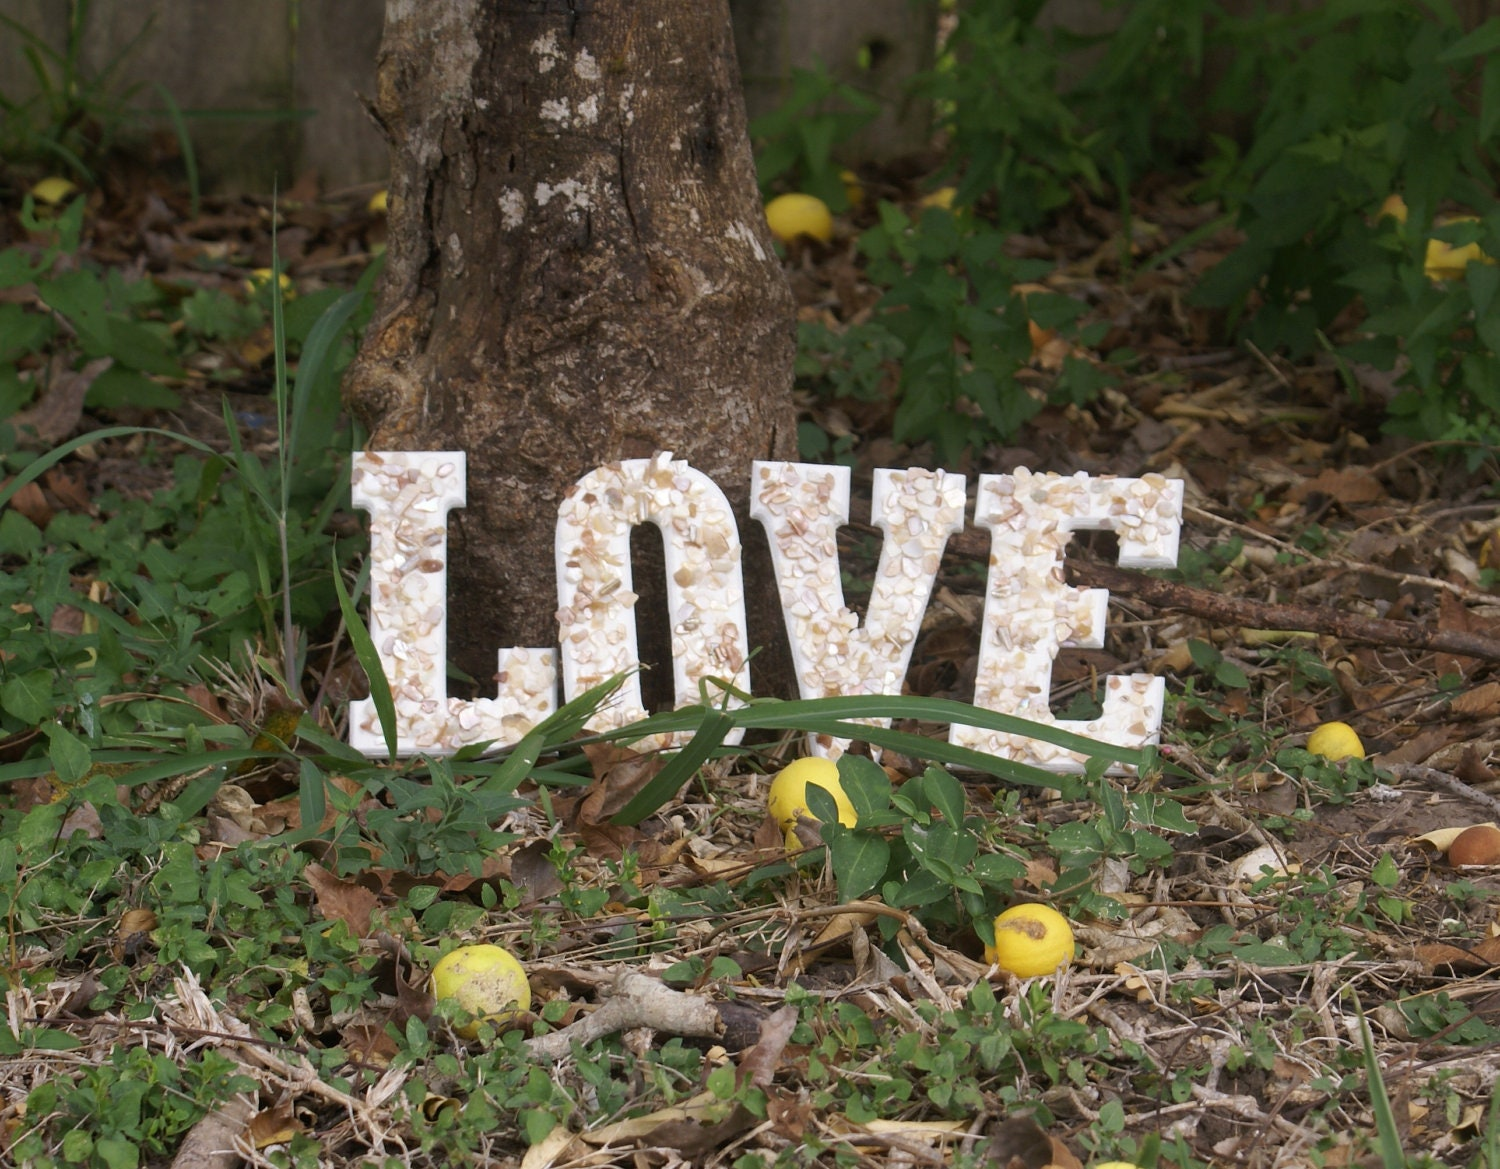 Signage wedding decor seashell Love Letters beach by JustShellin